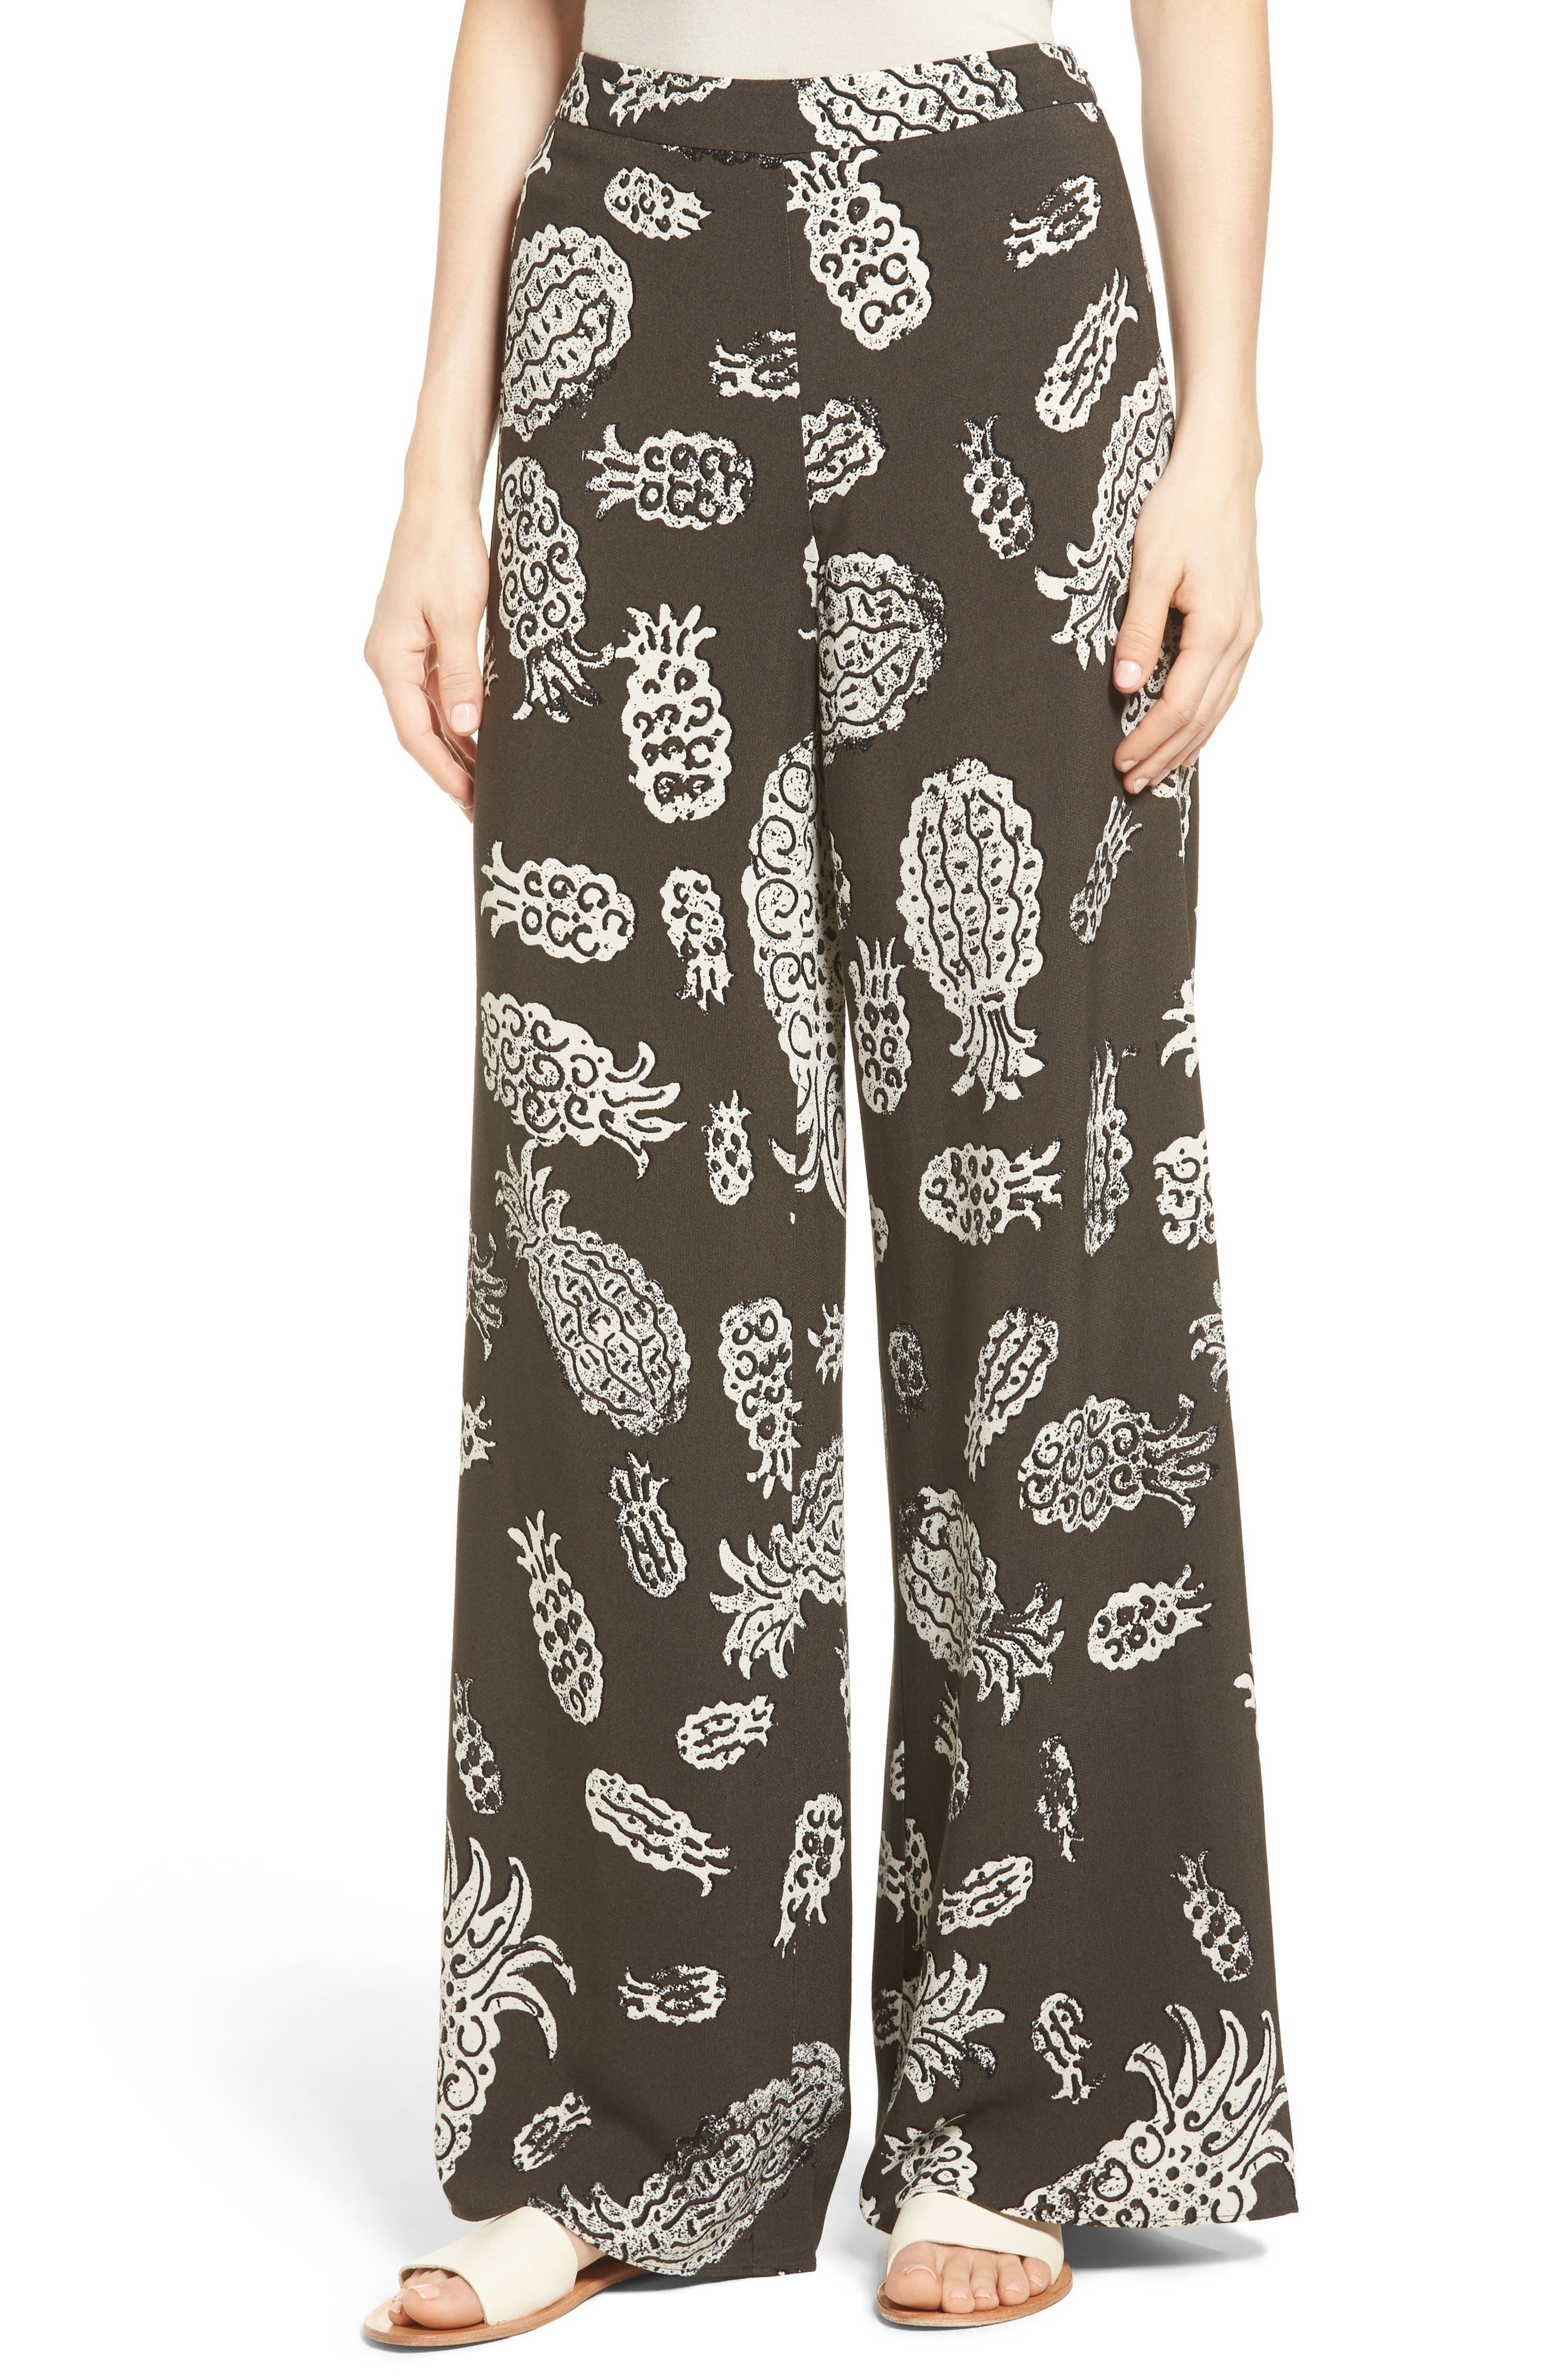 Alternate Image 1 Selected - NIC+ZOE Pineapple Pop Print Pants